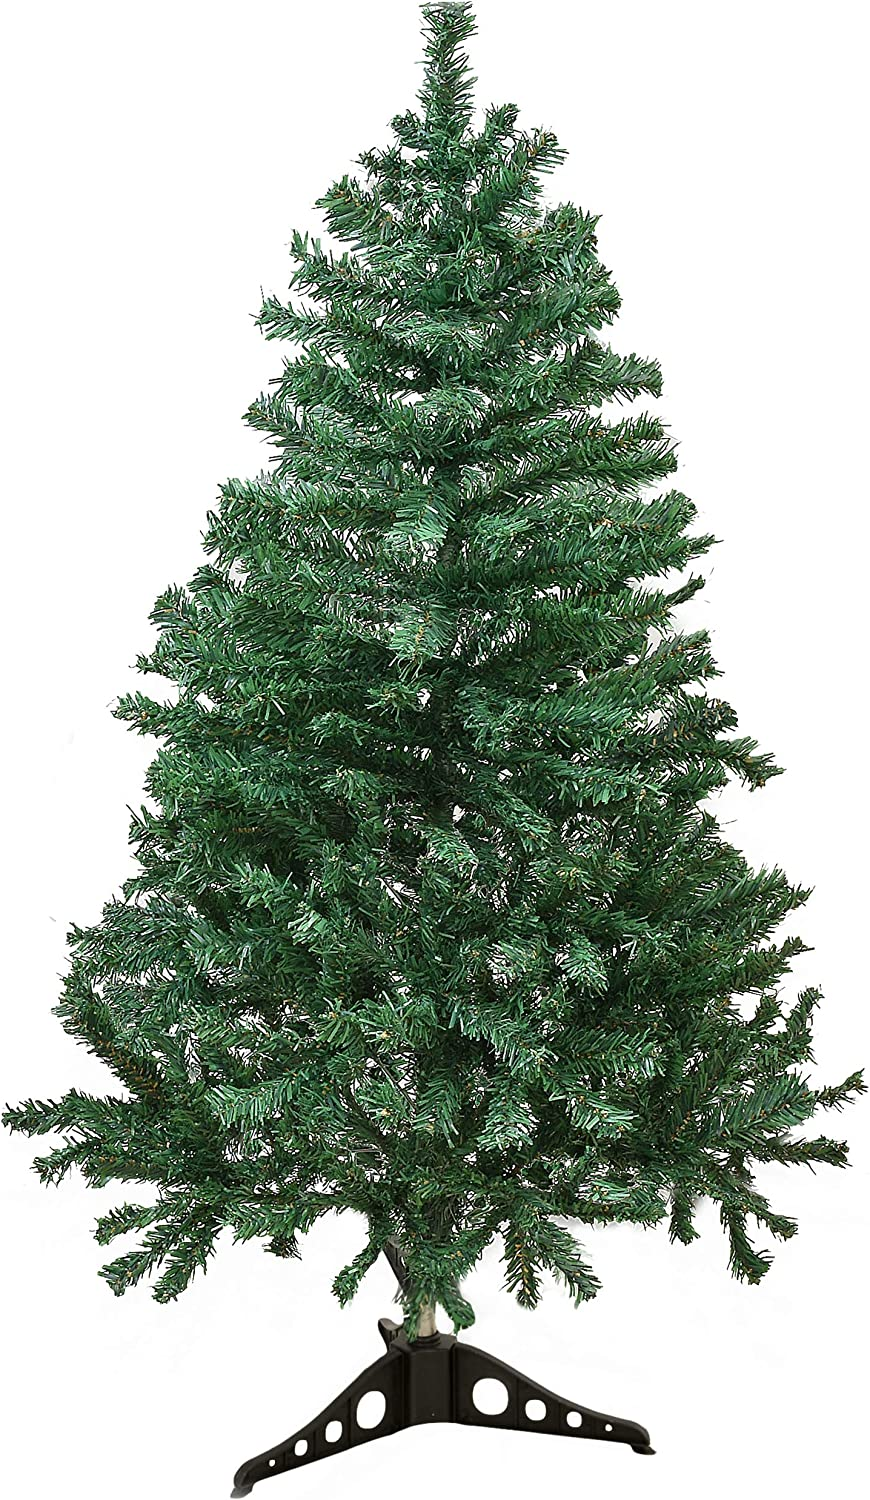 Holiday Essence 4 Foot Christmas Tree, 300 Tips Artificial Green Canadian Pine Tree, Unlit Premium Hinged 4 Ft Tall, PVC Base